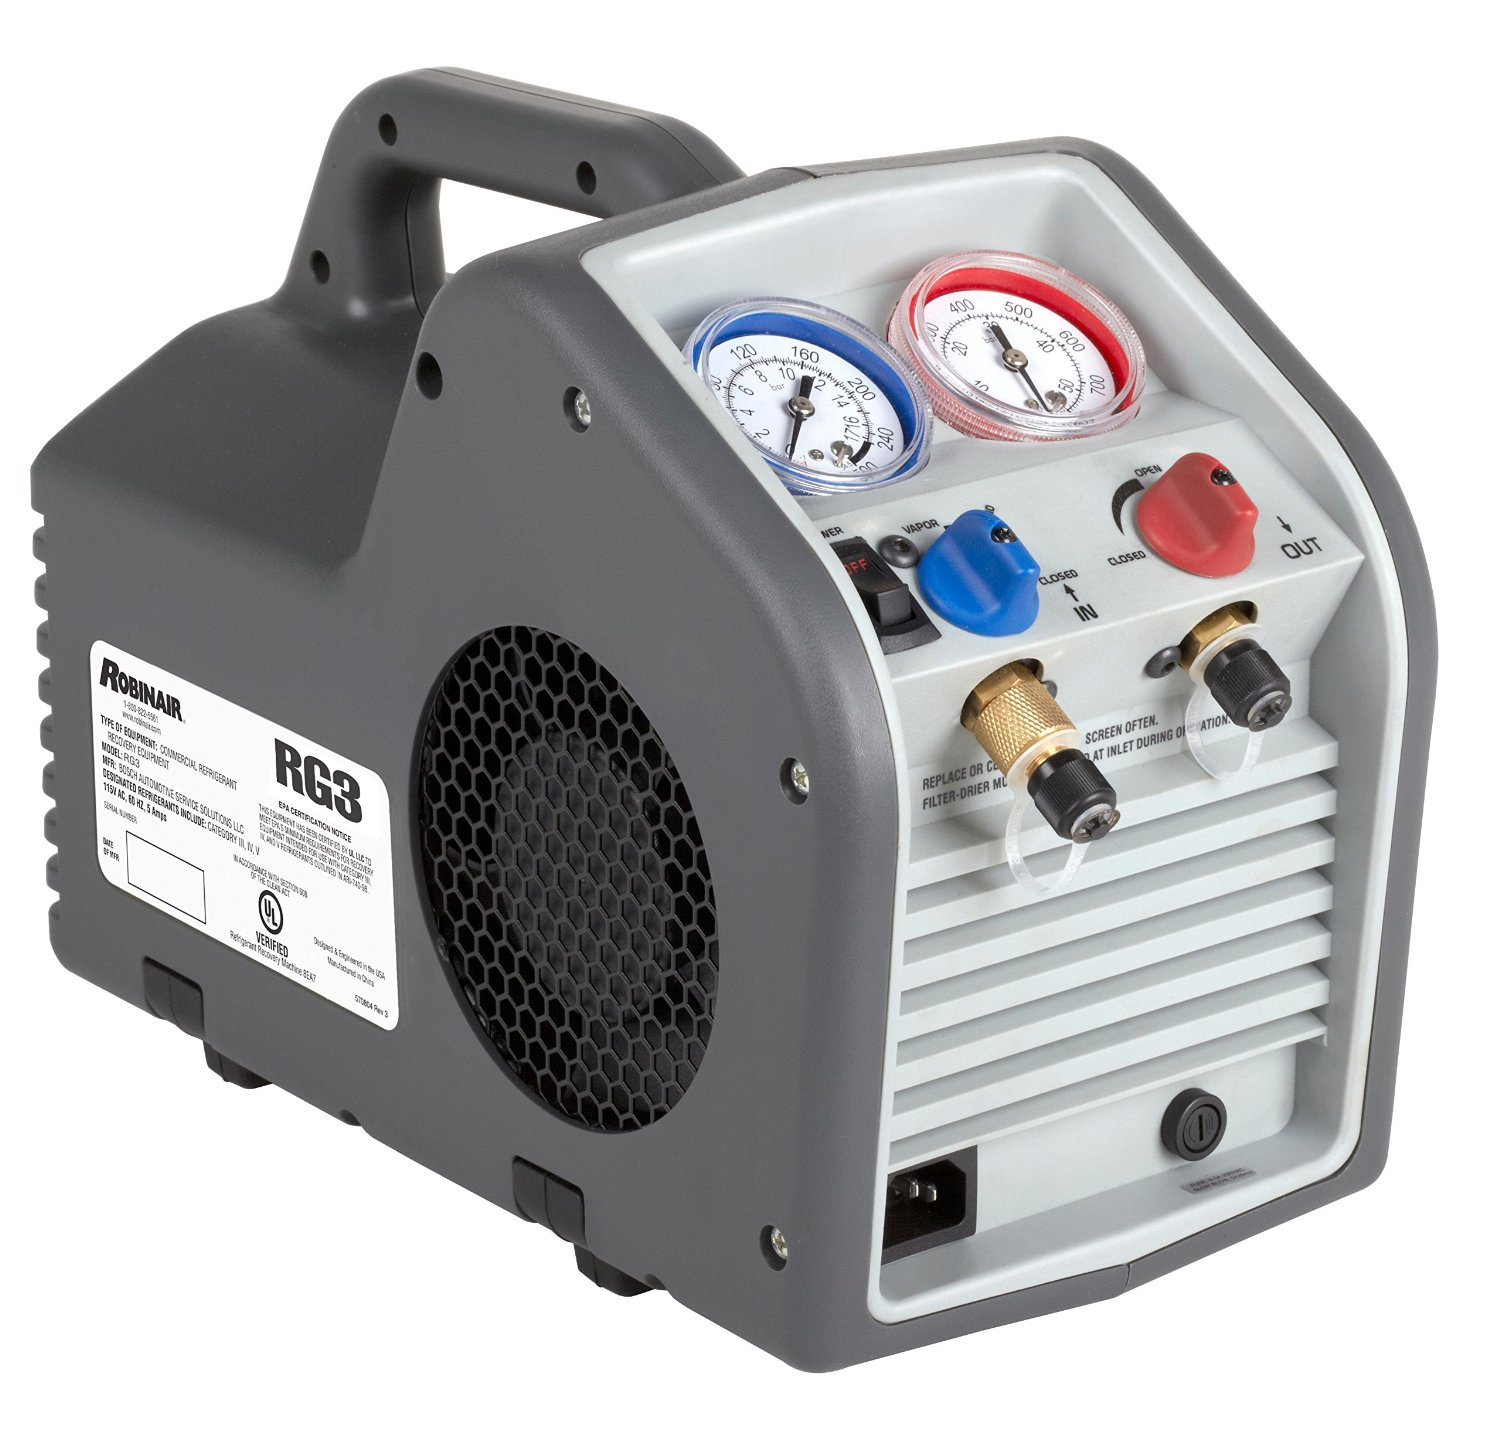 Product Review: Robinair (RG3) Portable Refrigerant Recovery Machine